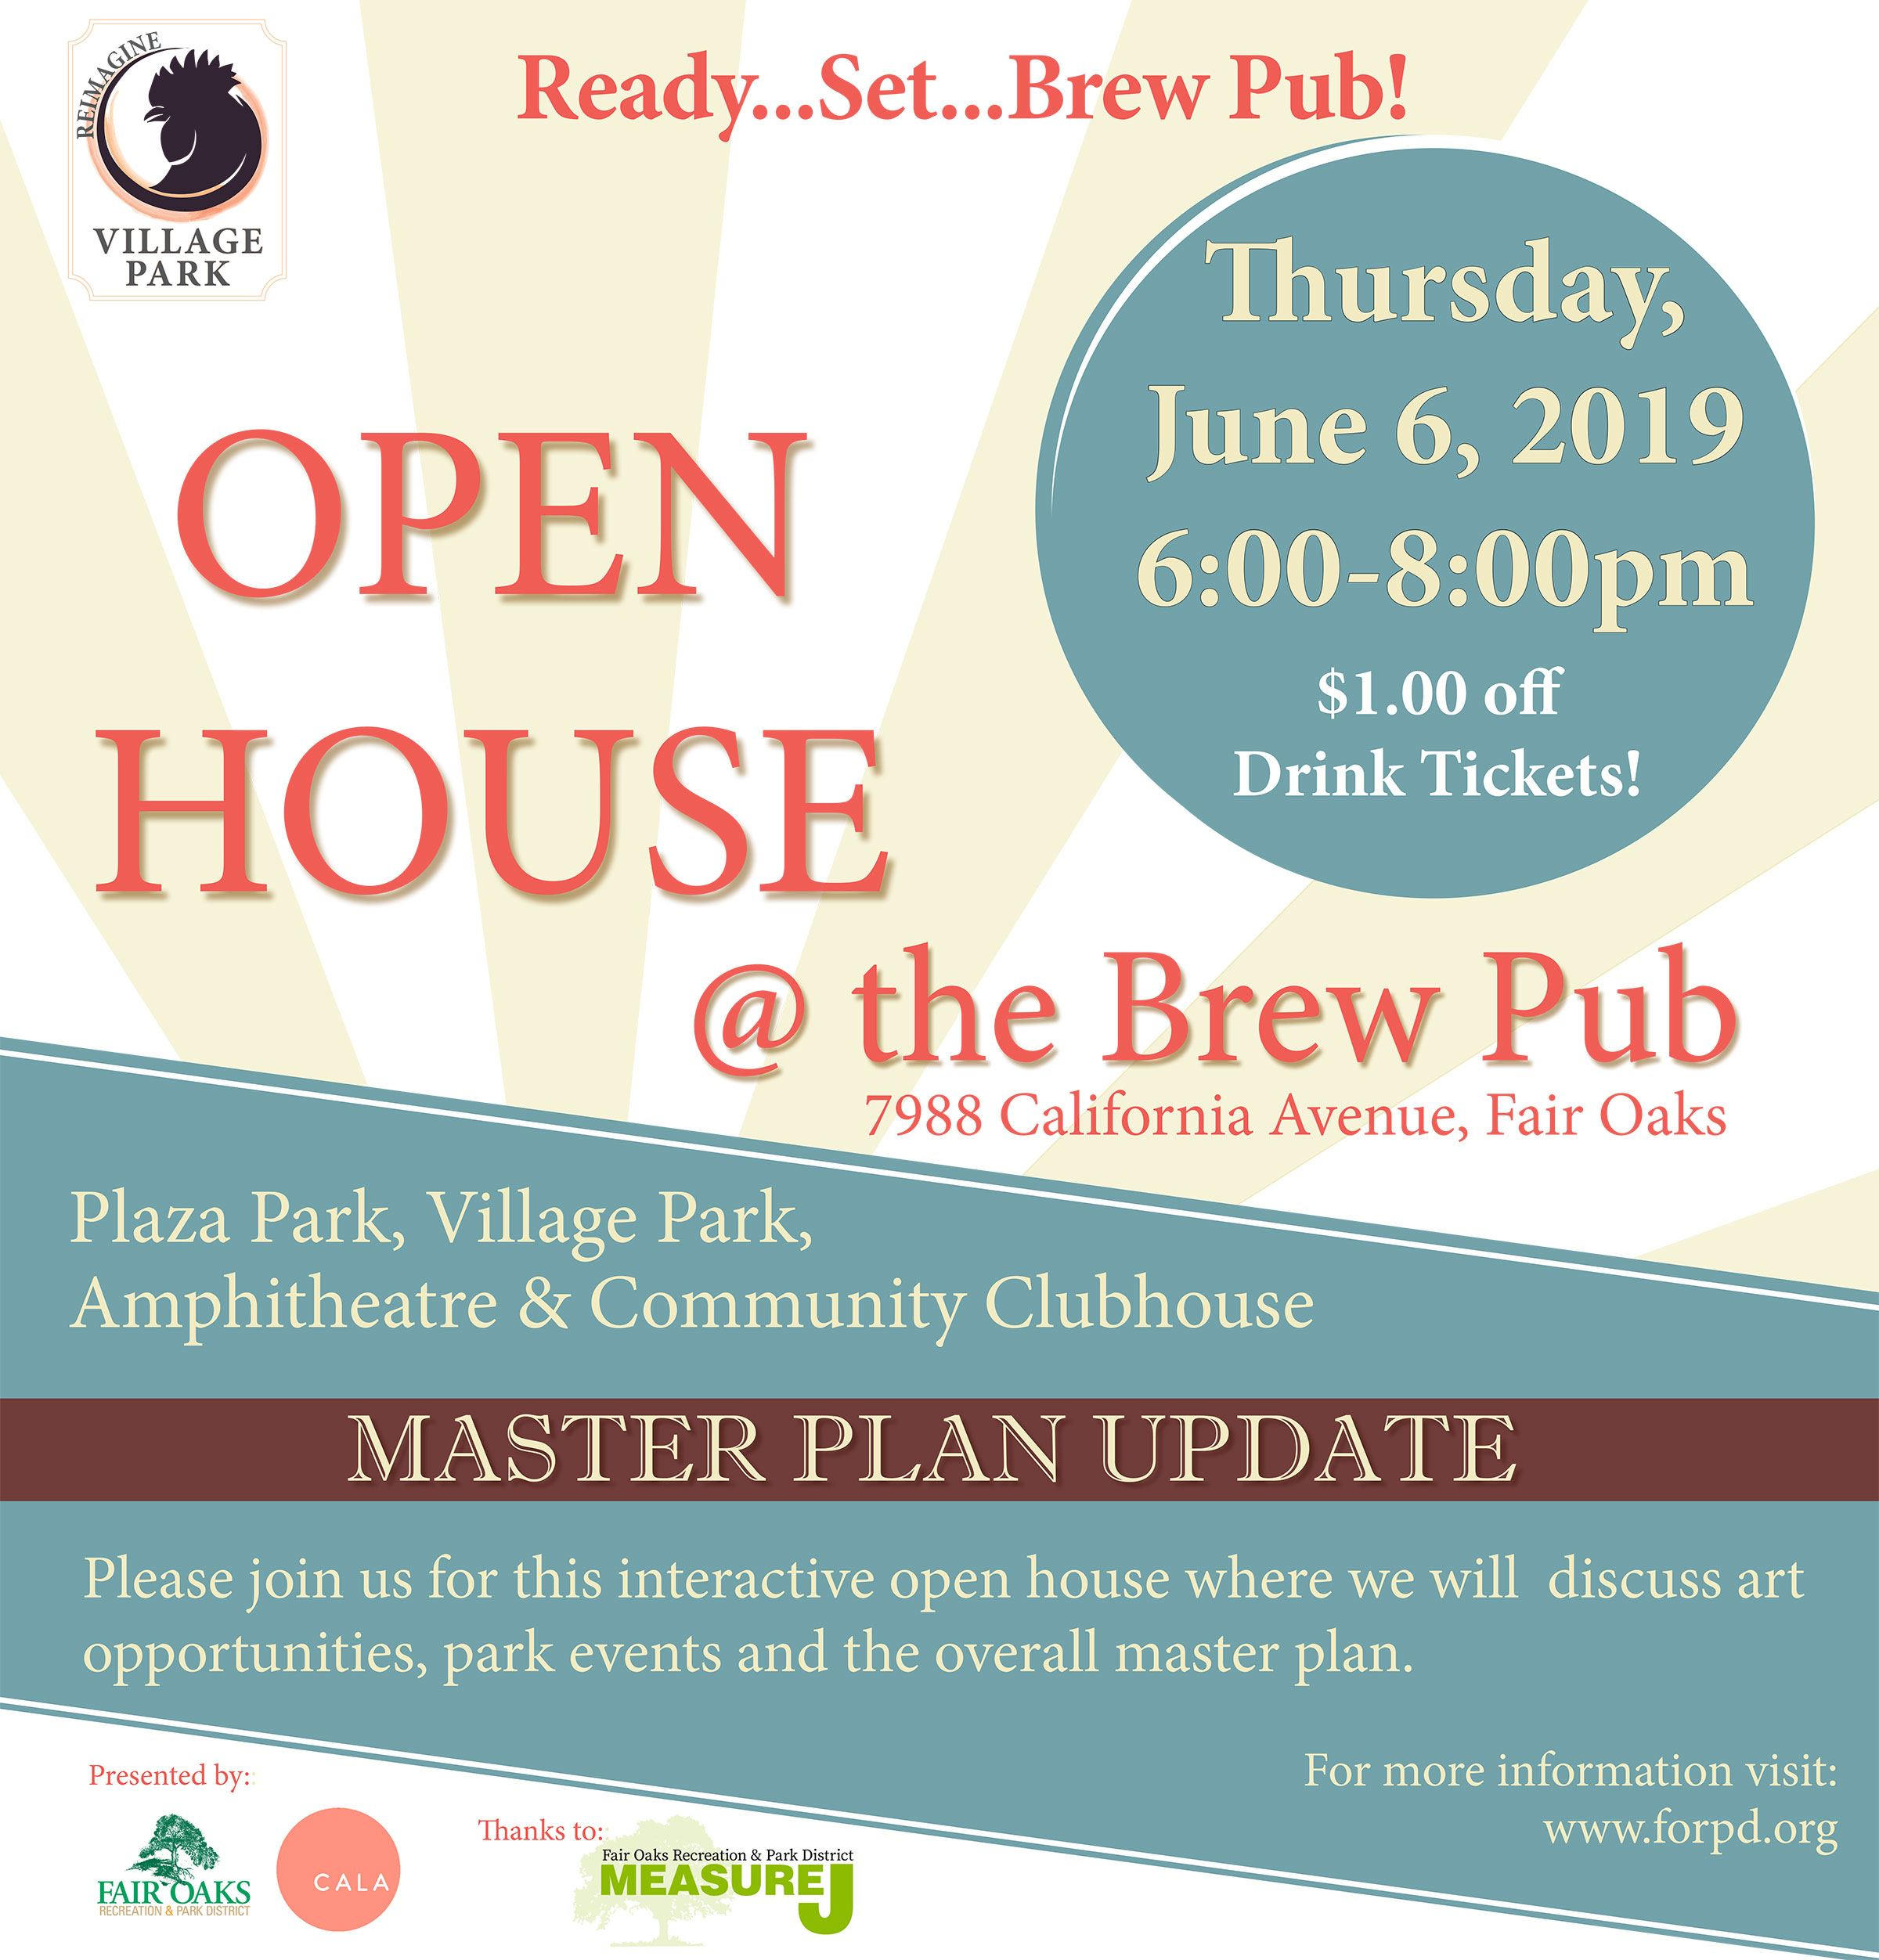 Open House at the Brew Pub